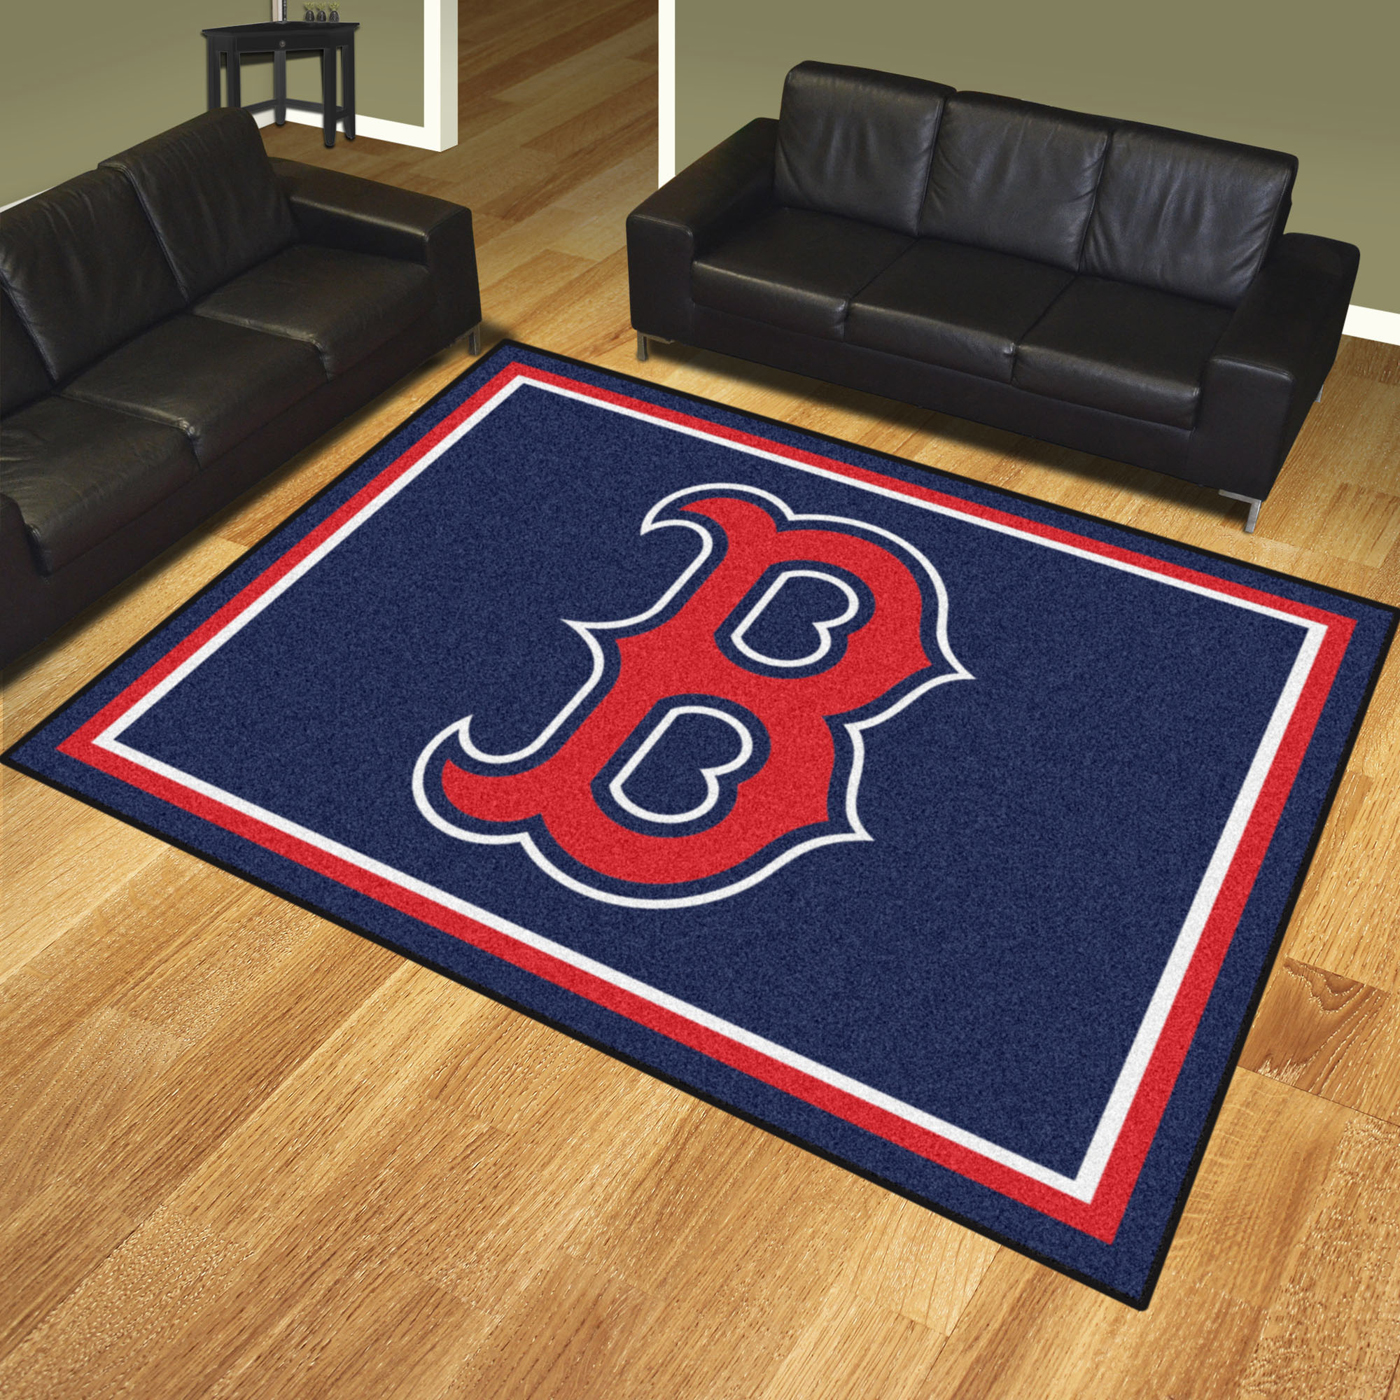 Boston Red Sox 8' X 10' Area Rug